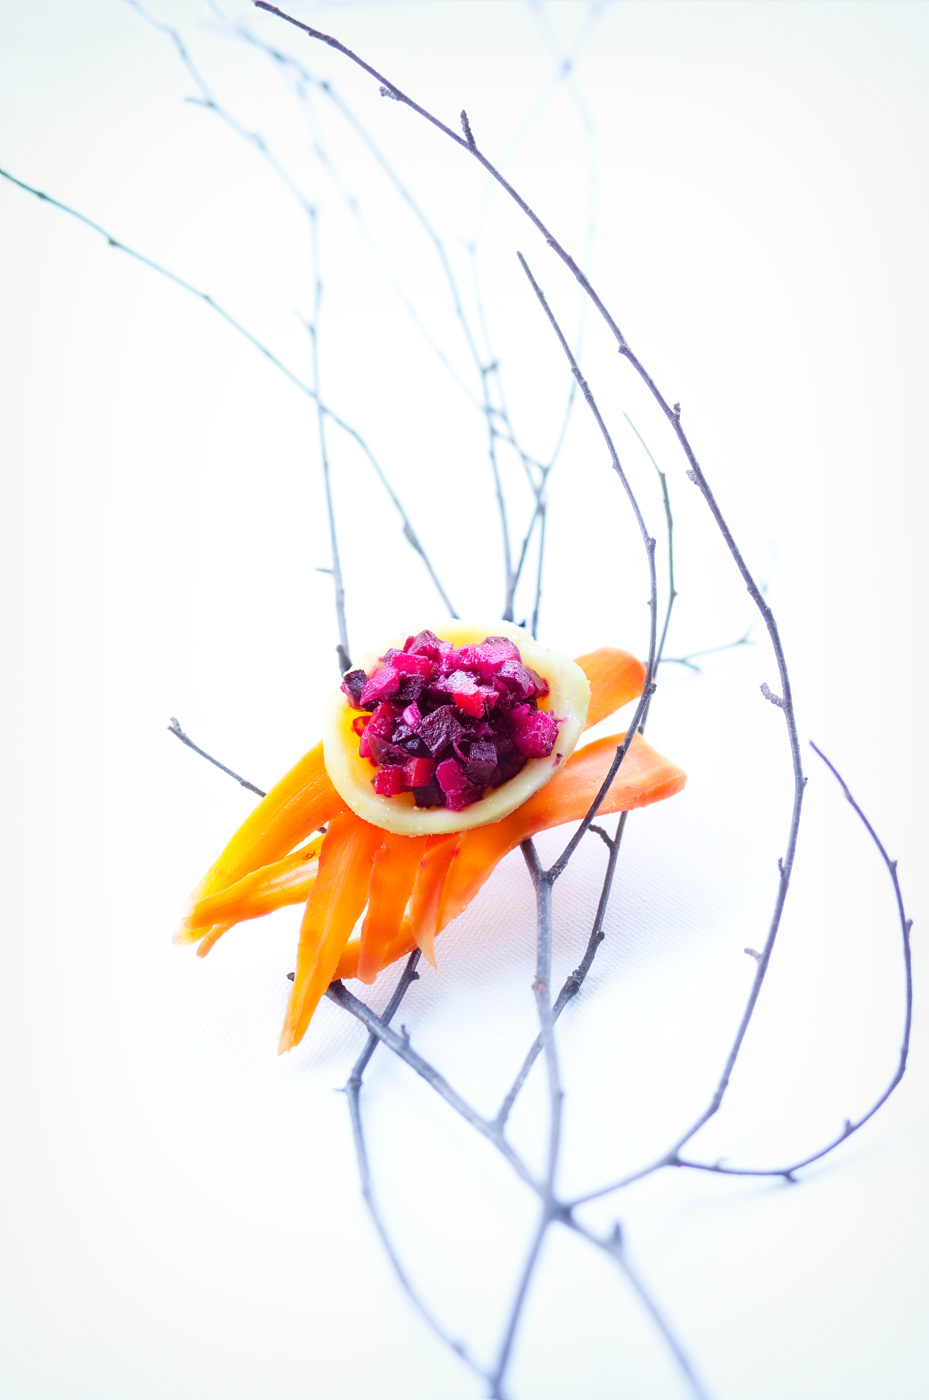 Recipe image depicting a red beetroot salad with carrots placed on a branch